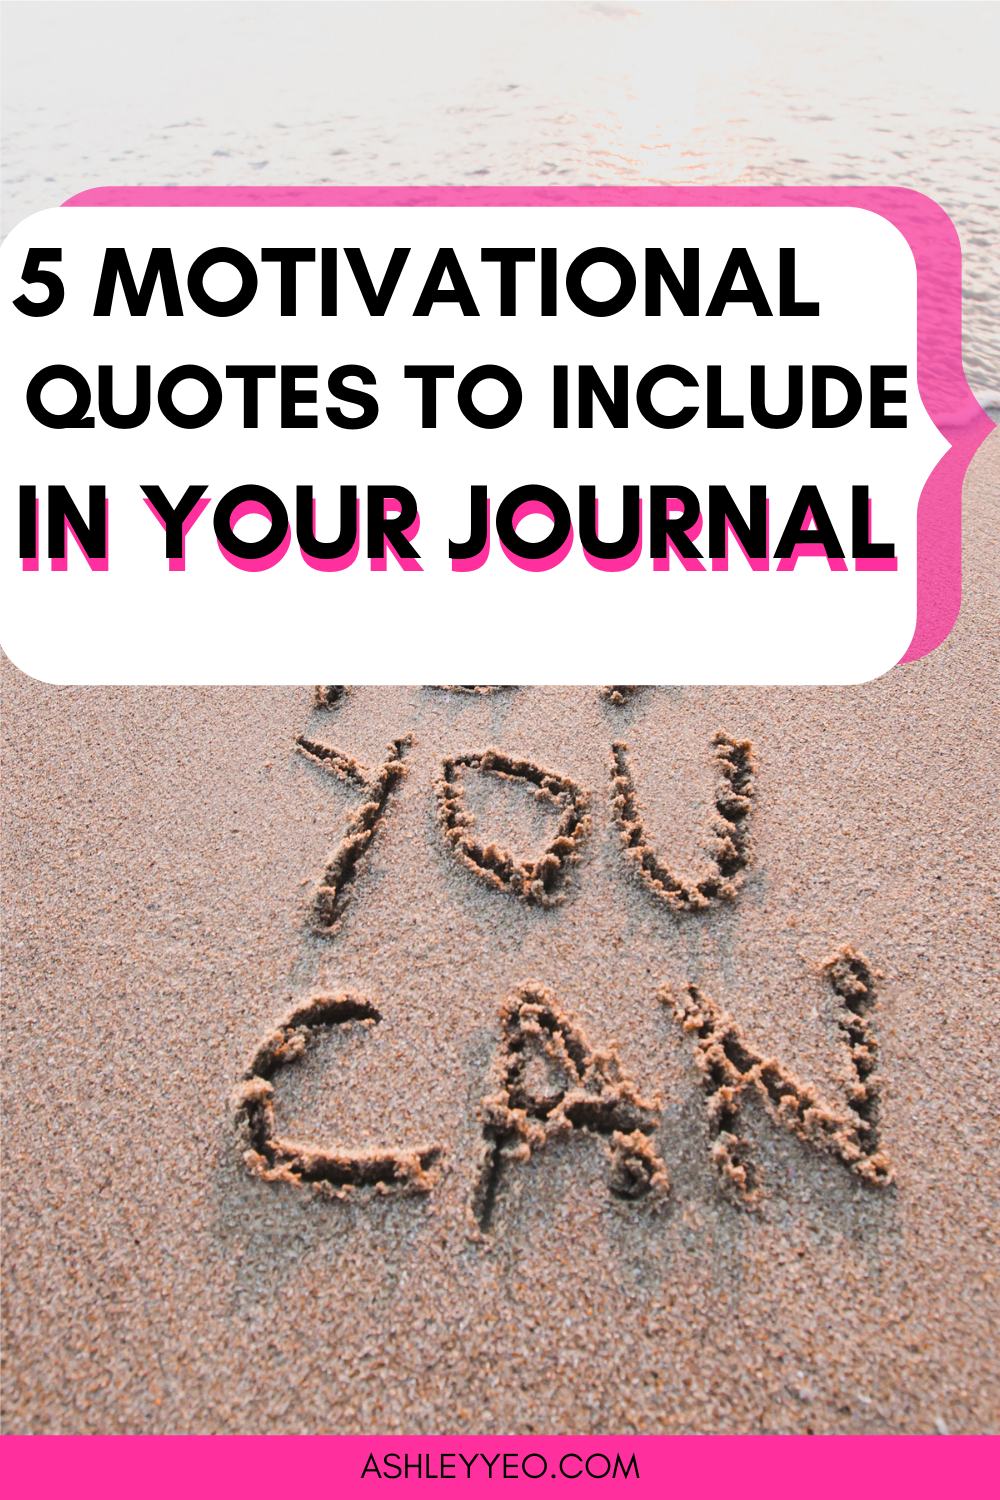 Five Motivational Quotes to Include in Your Journal